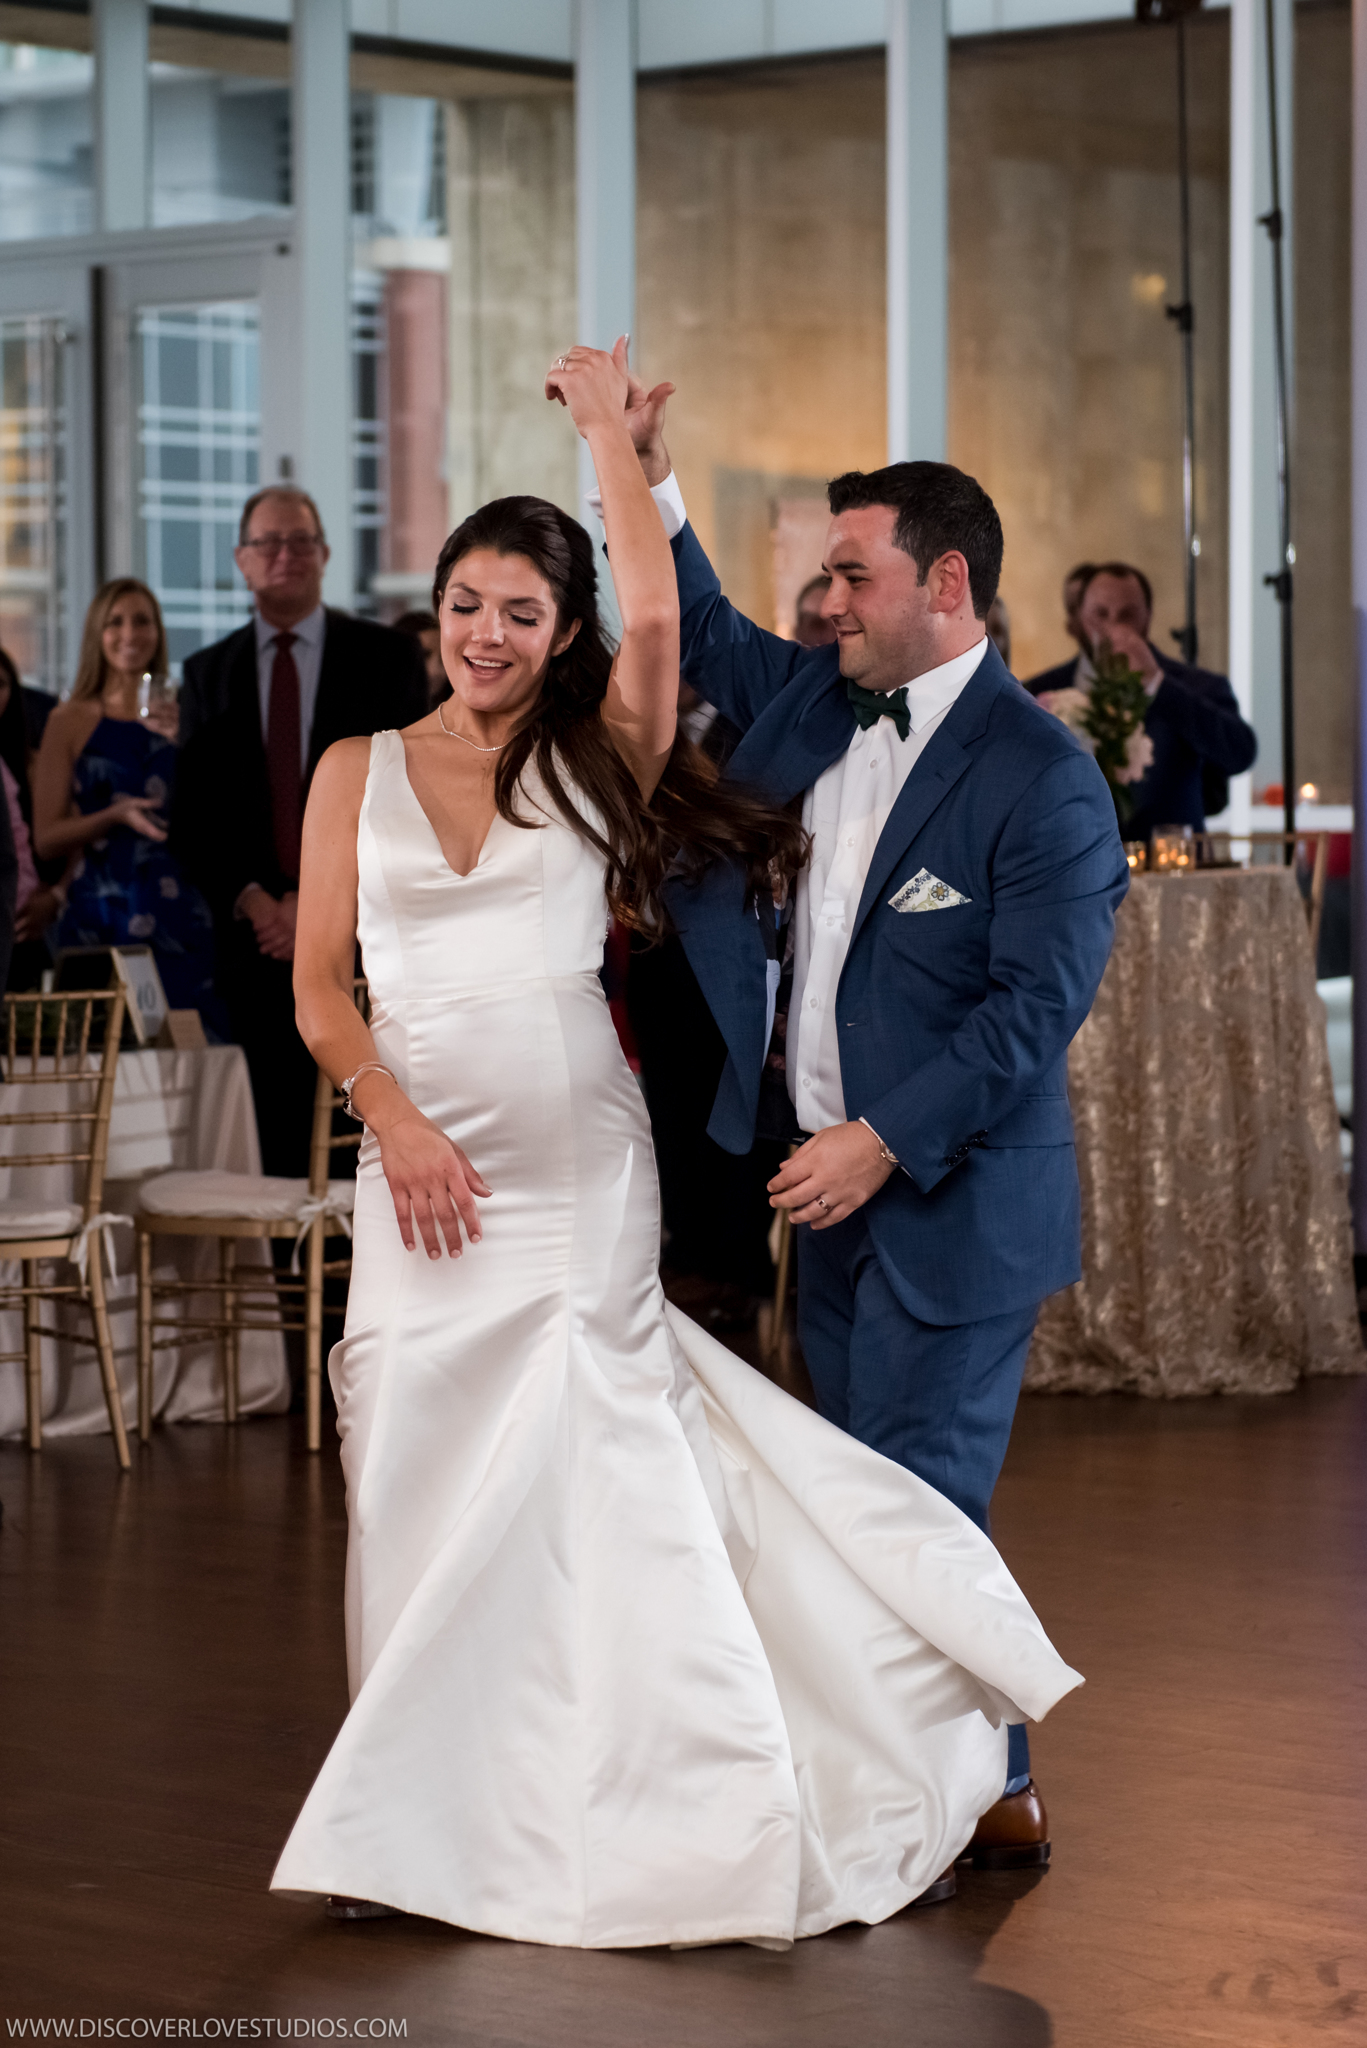 Bride spins groom at uptown wedding reception coordinated by Magnificent Moments Weddings